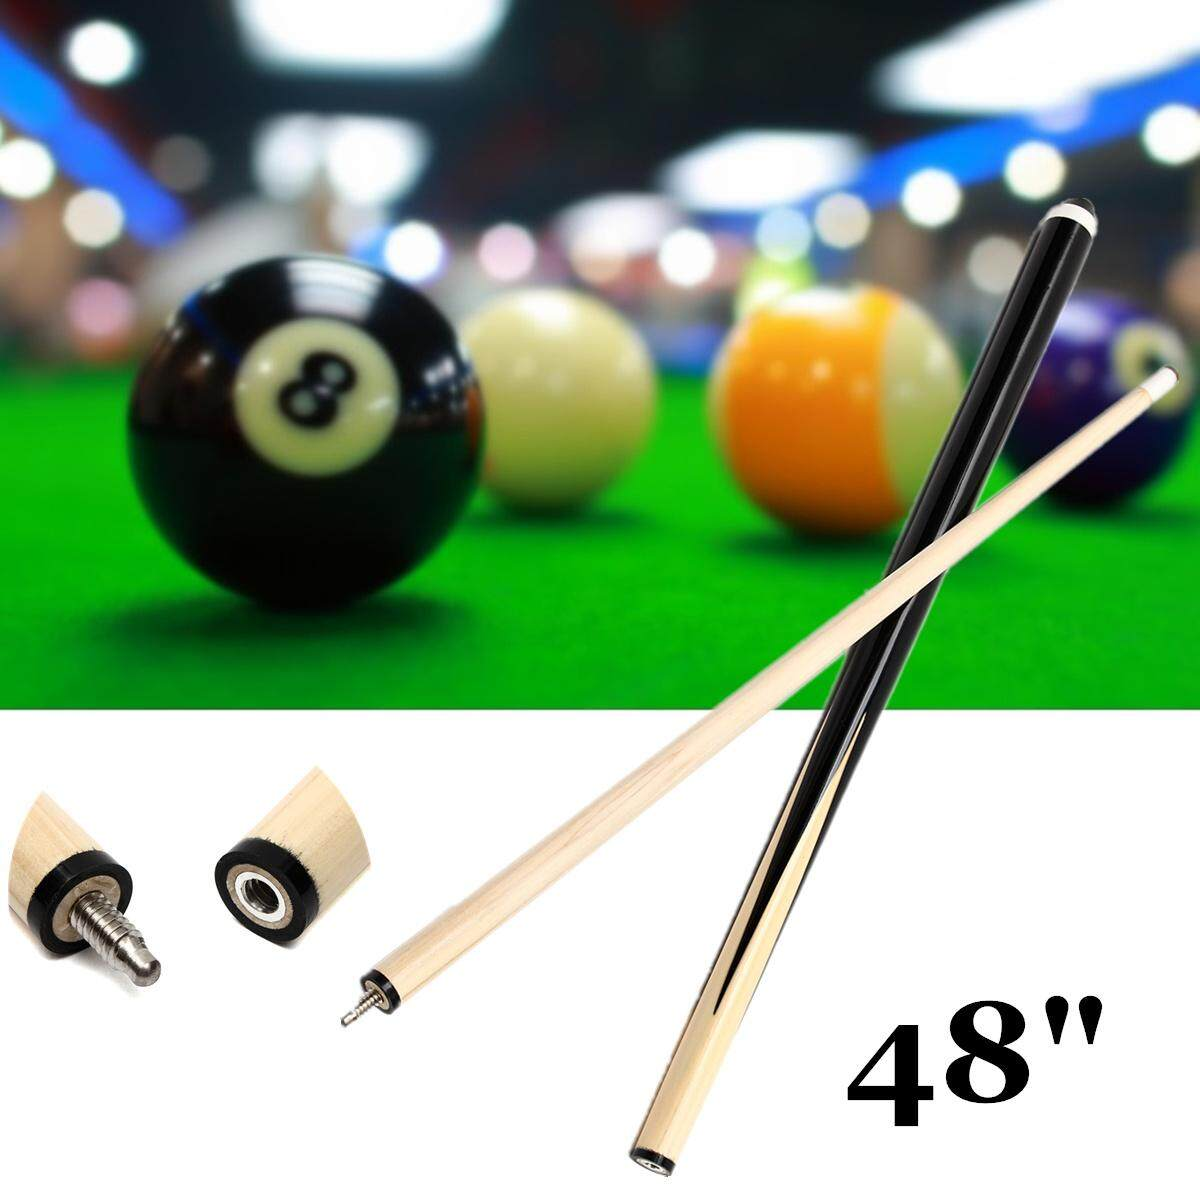 48 Short Wooden Pool Billiards Snooker Cue For Kids Small Room Au By Freebang.